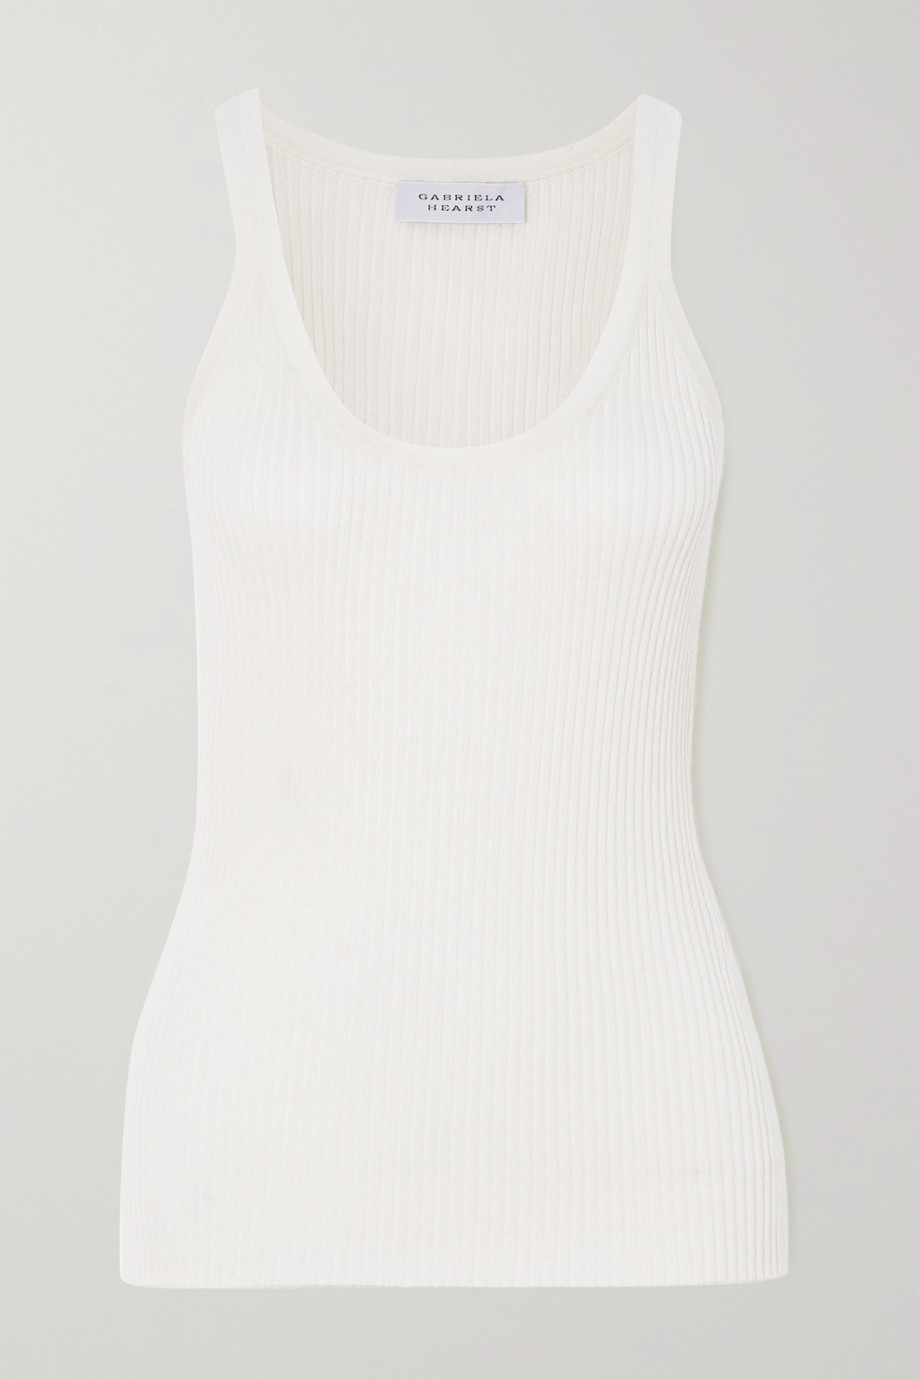 Gabriela Hearst Daniel ribbed wool tank top